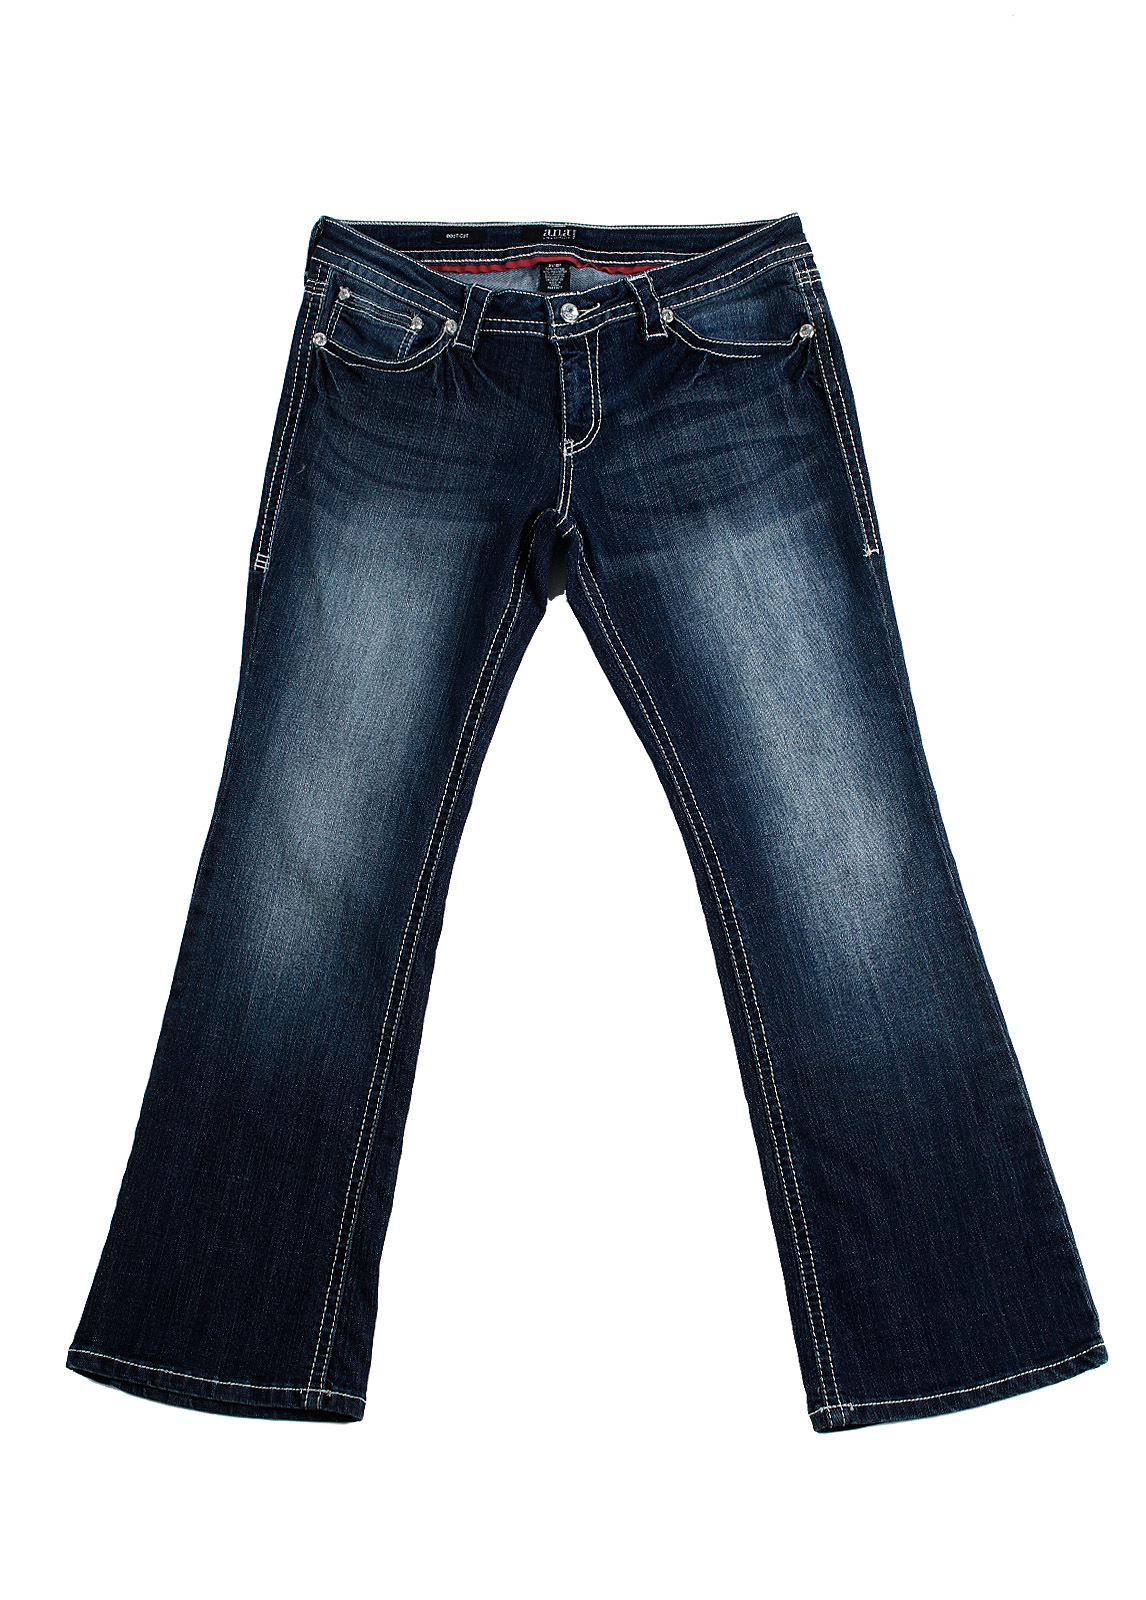 Bootcut Jeans for Women. We are proud to be one of the first premium denim brands to have perfected the bootcut jean for women. Versatile and comfortable no matter your height or body type, our bootcut jeans are made to flatter and elongating the legs while offering a supremely comfortable fit.